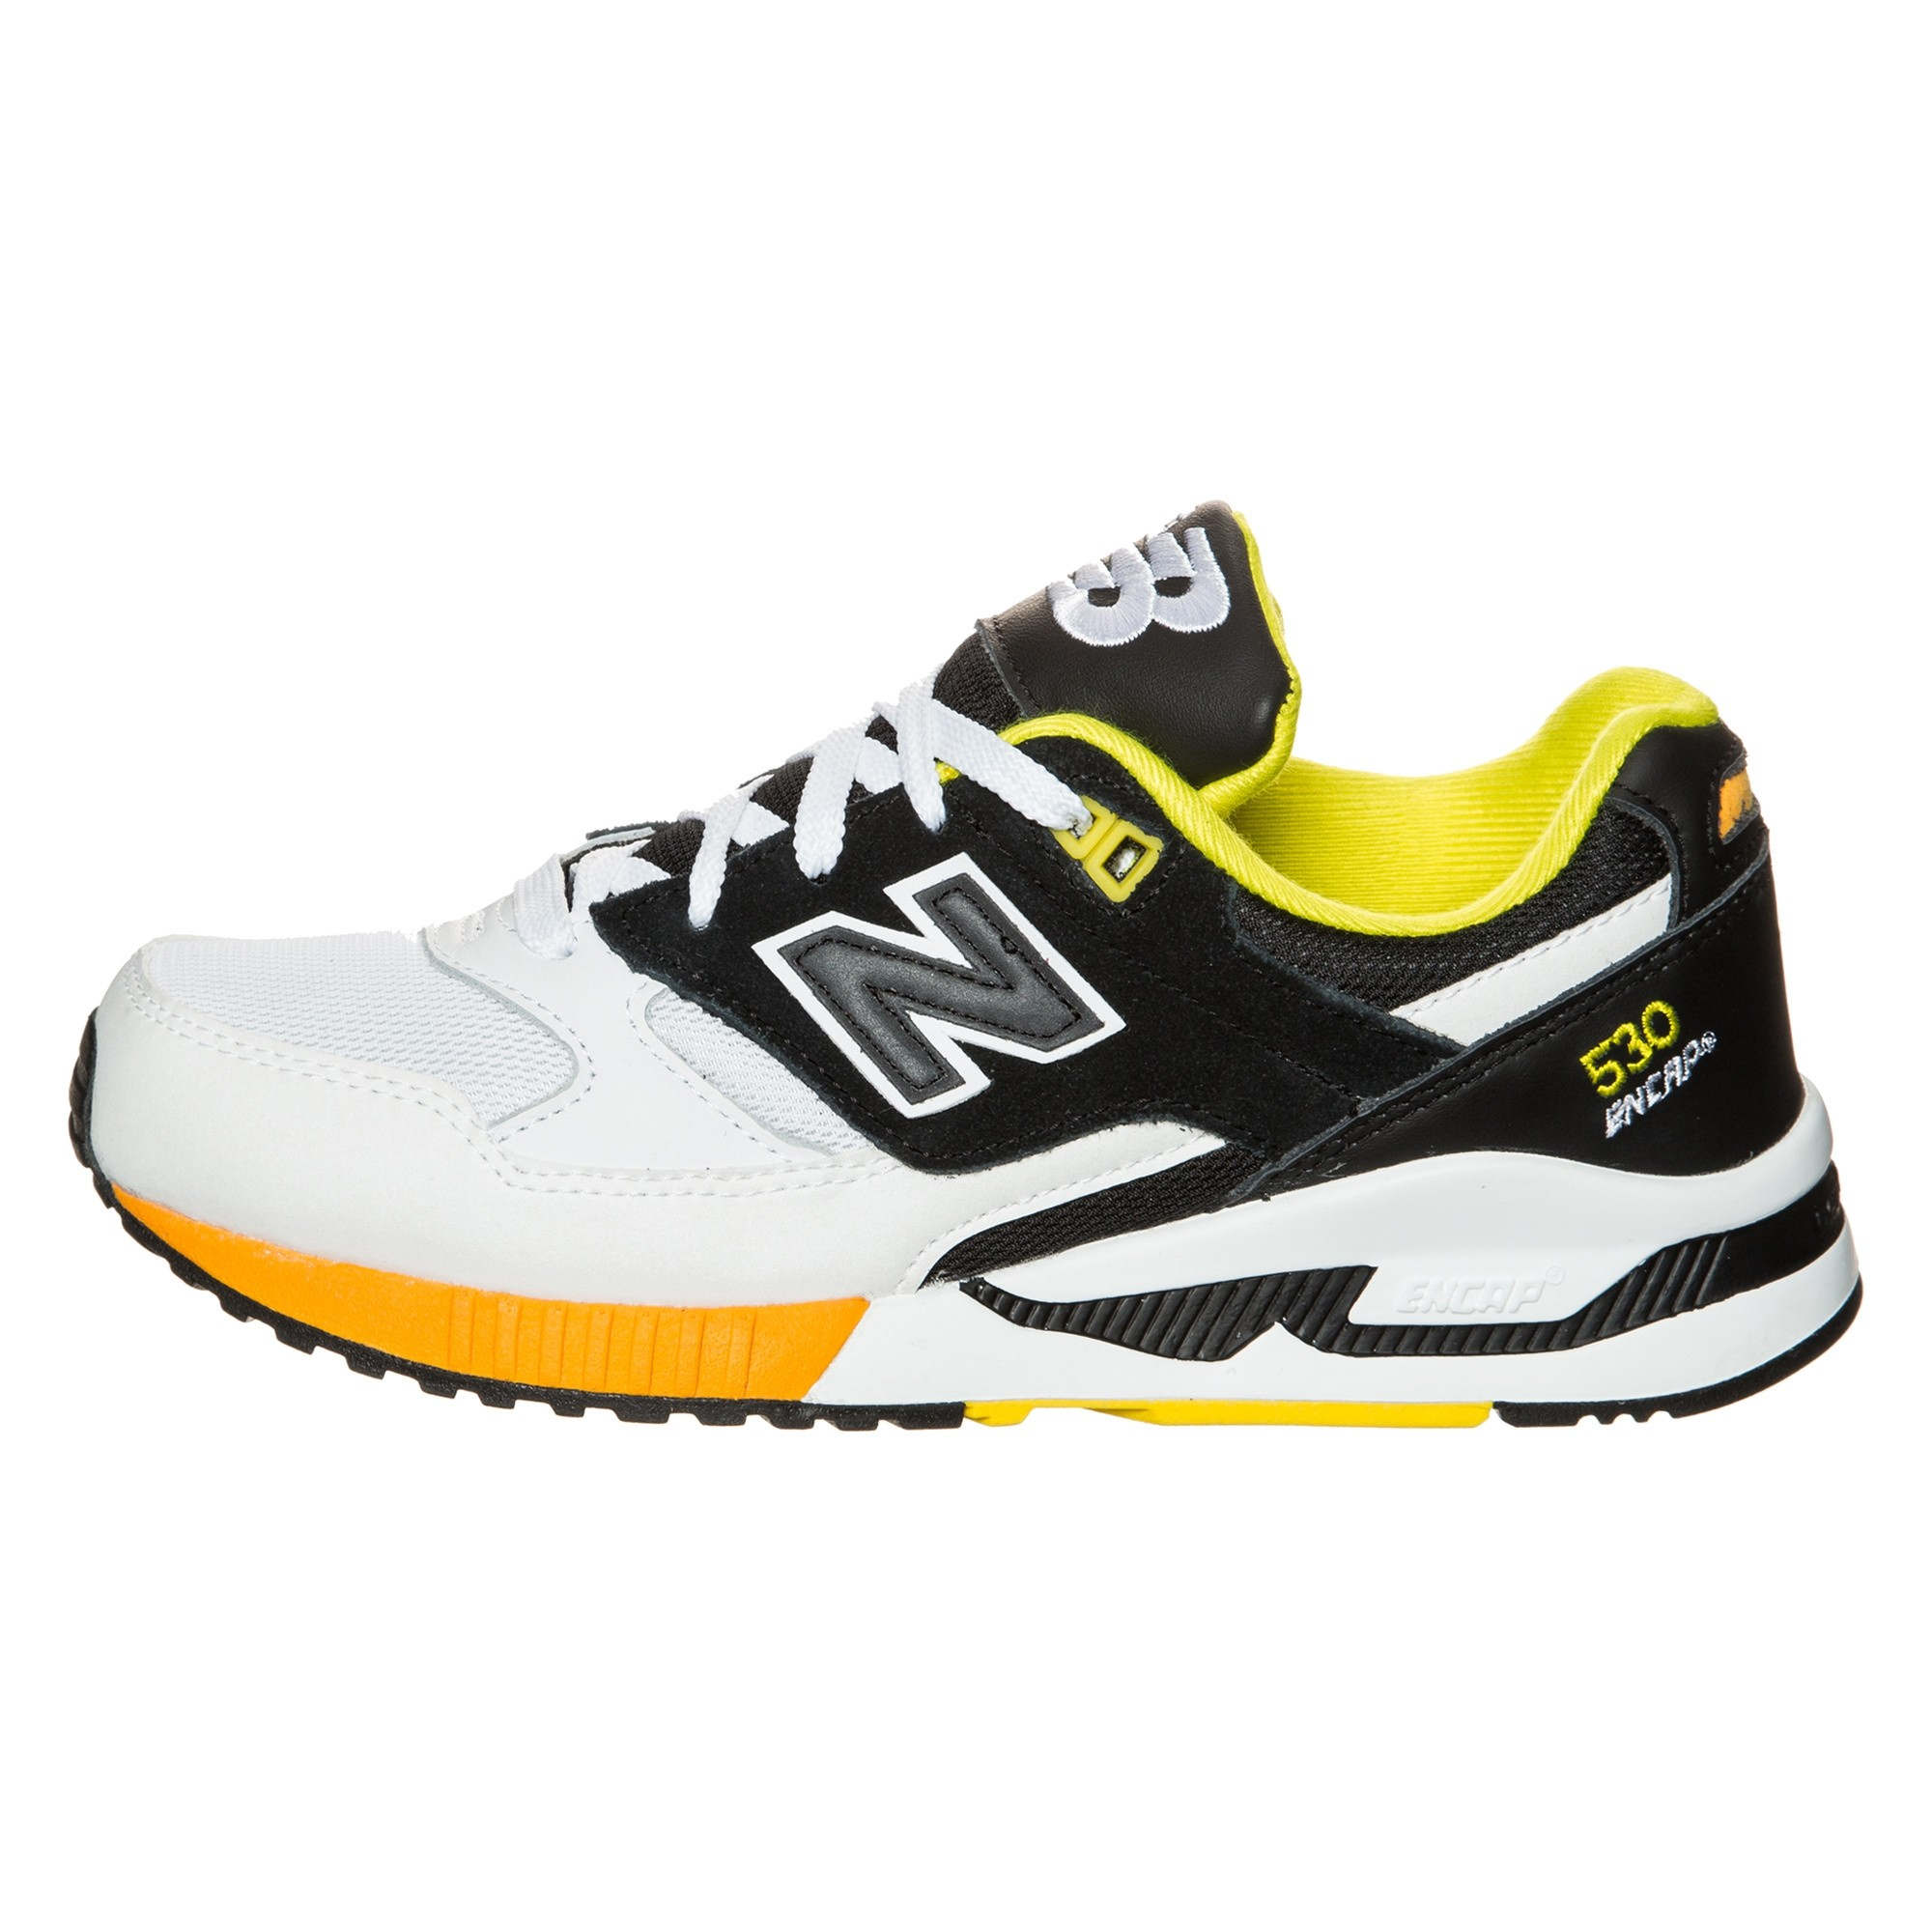 New Balance W530BOA:NB 530 90s Leather White Black Yellow Casual Comfort Sneaker by